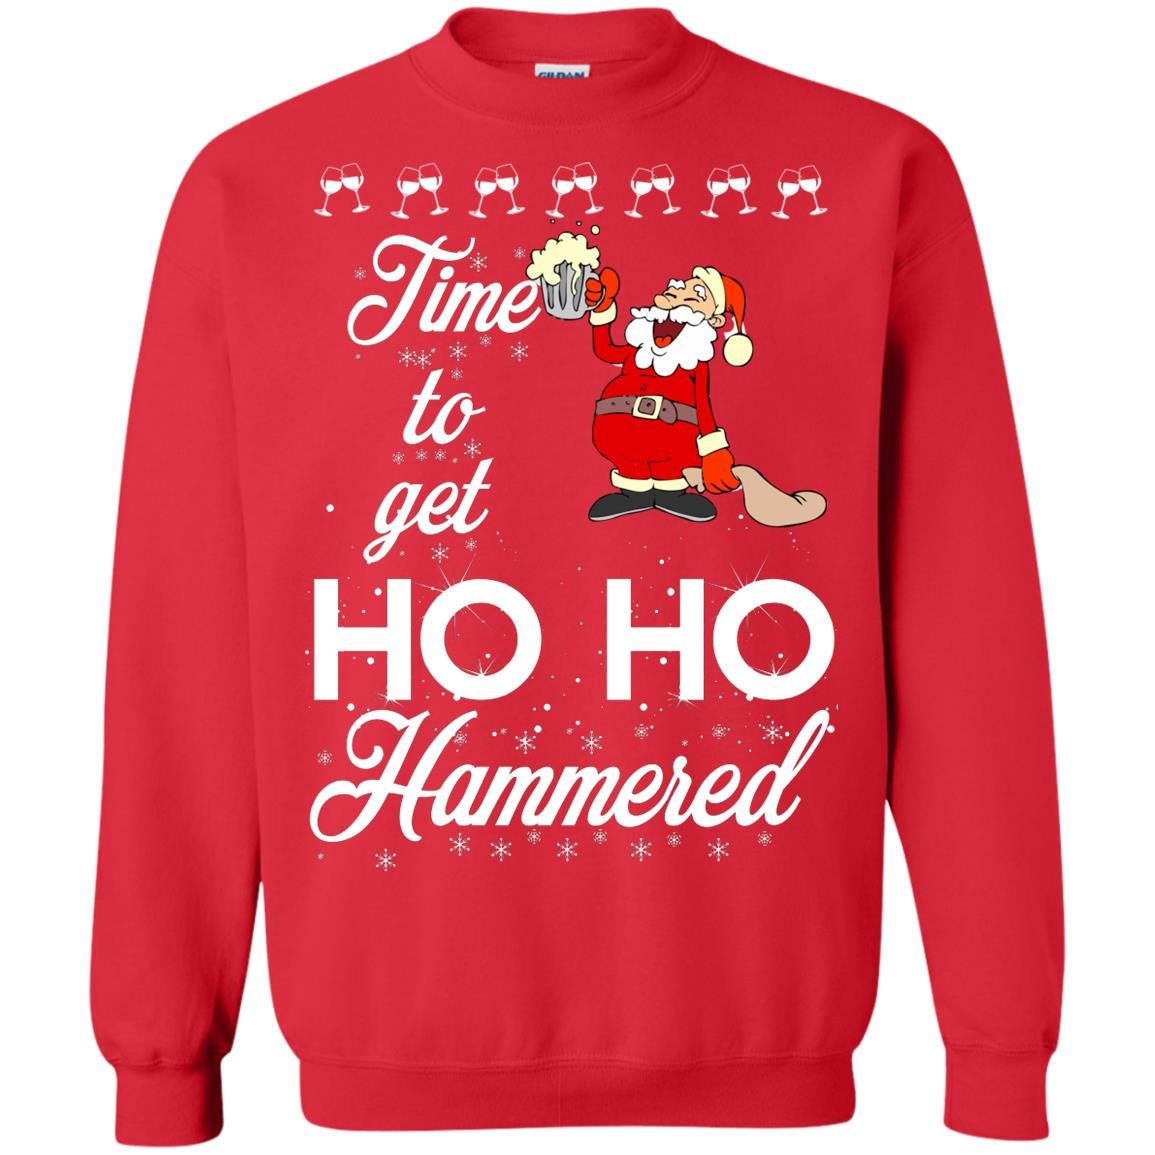 image 1656 - Time To Get Ho Ho Hammered Christmas Sweater, Shirt